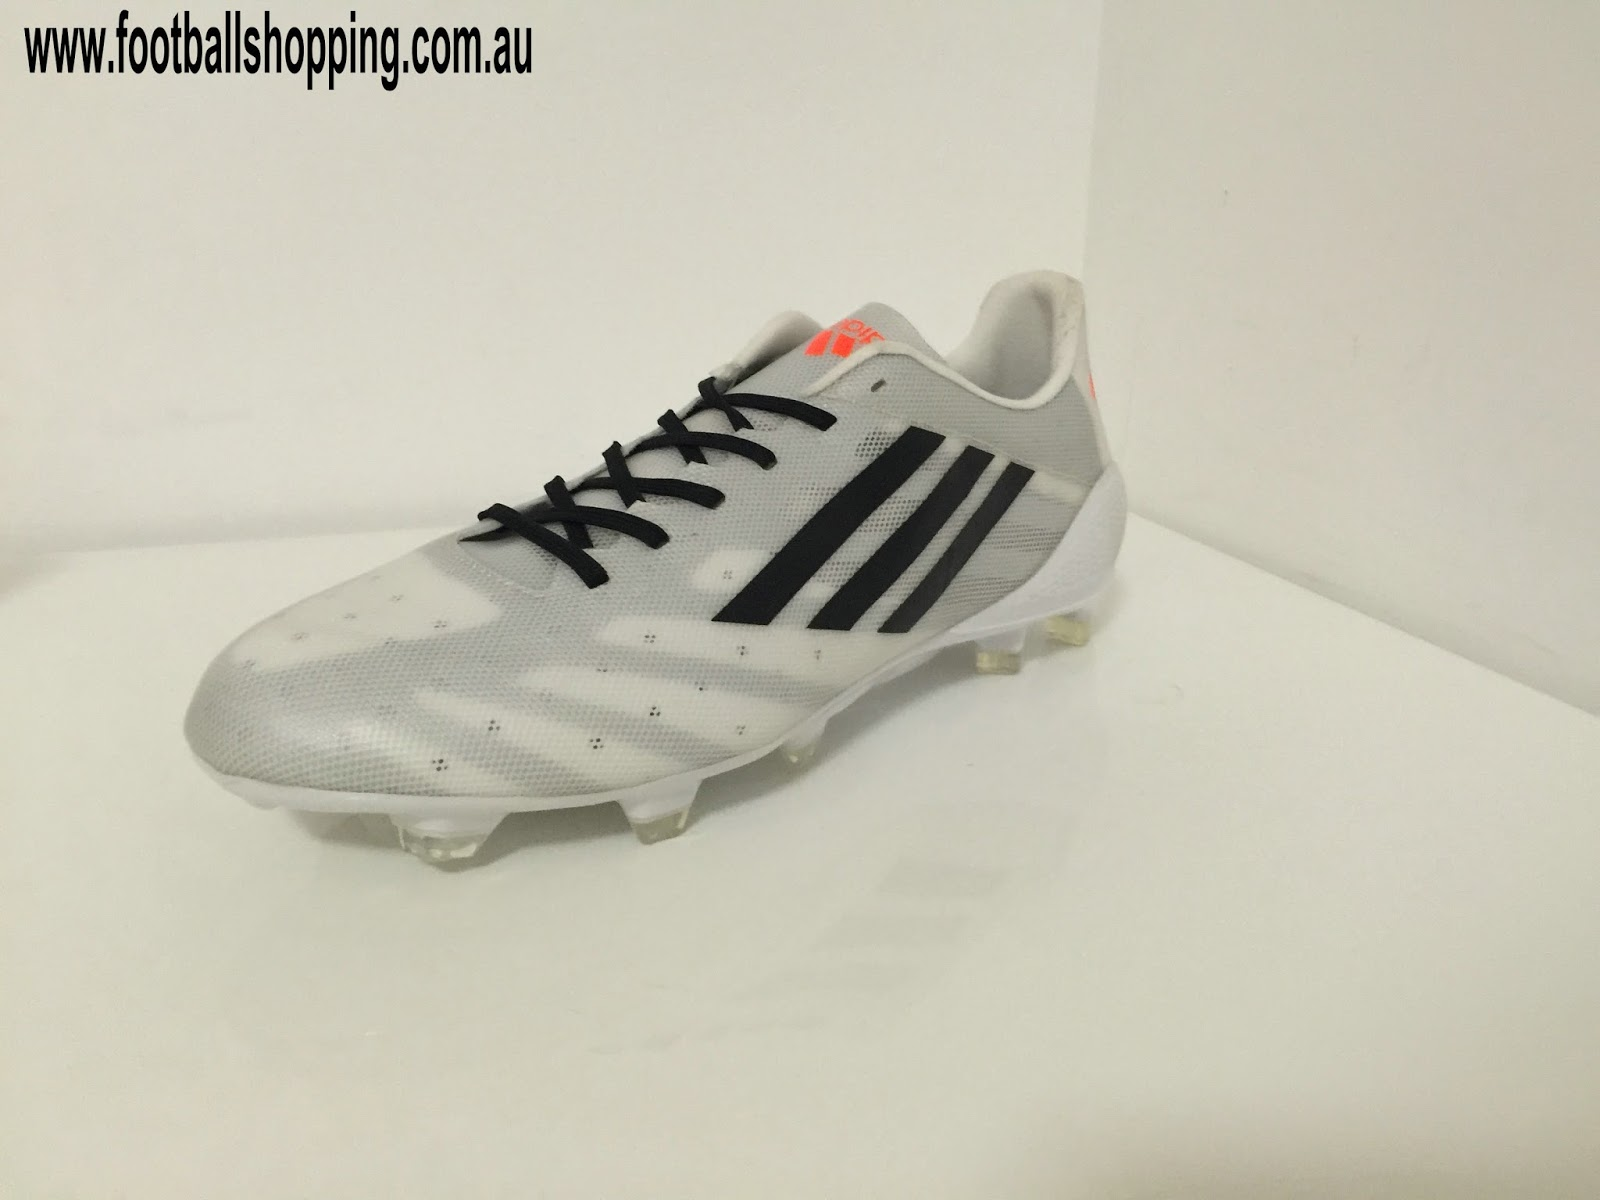 huge discount 63707 dd089 Adidas Adizero 99g Prototype Soccer Cleats White Solar Black